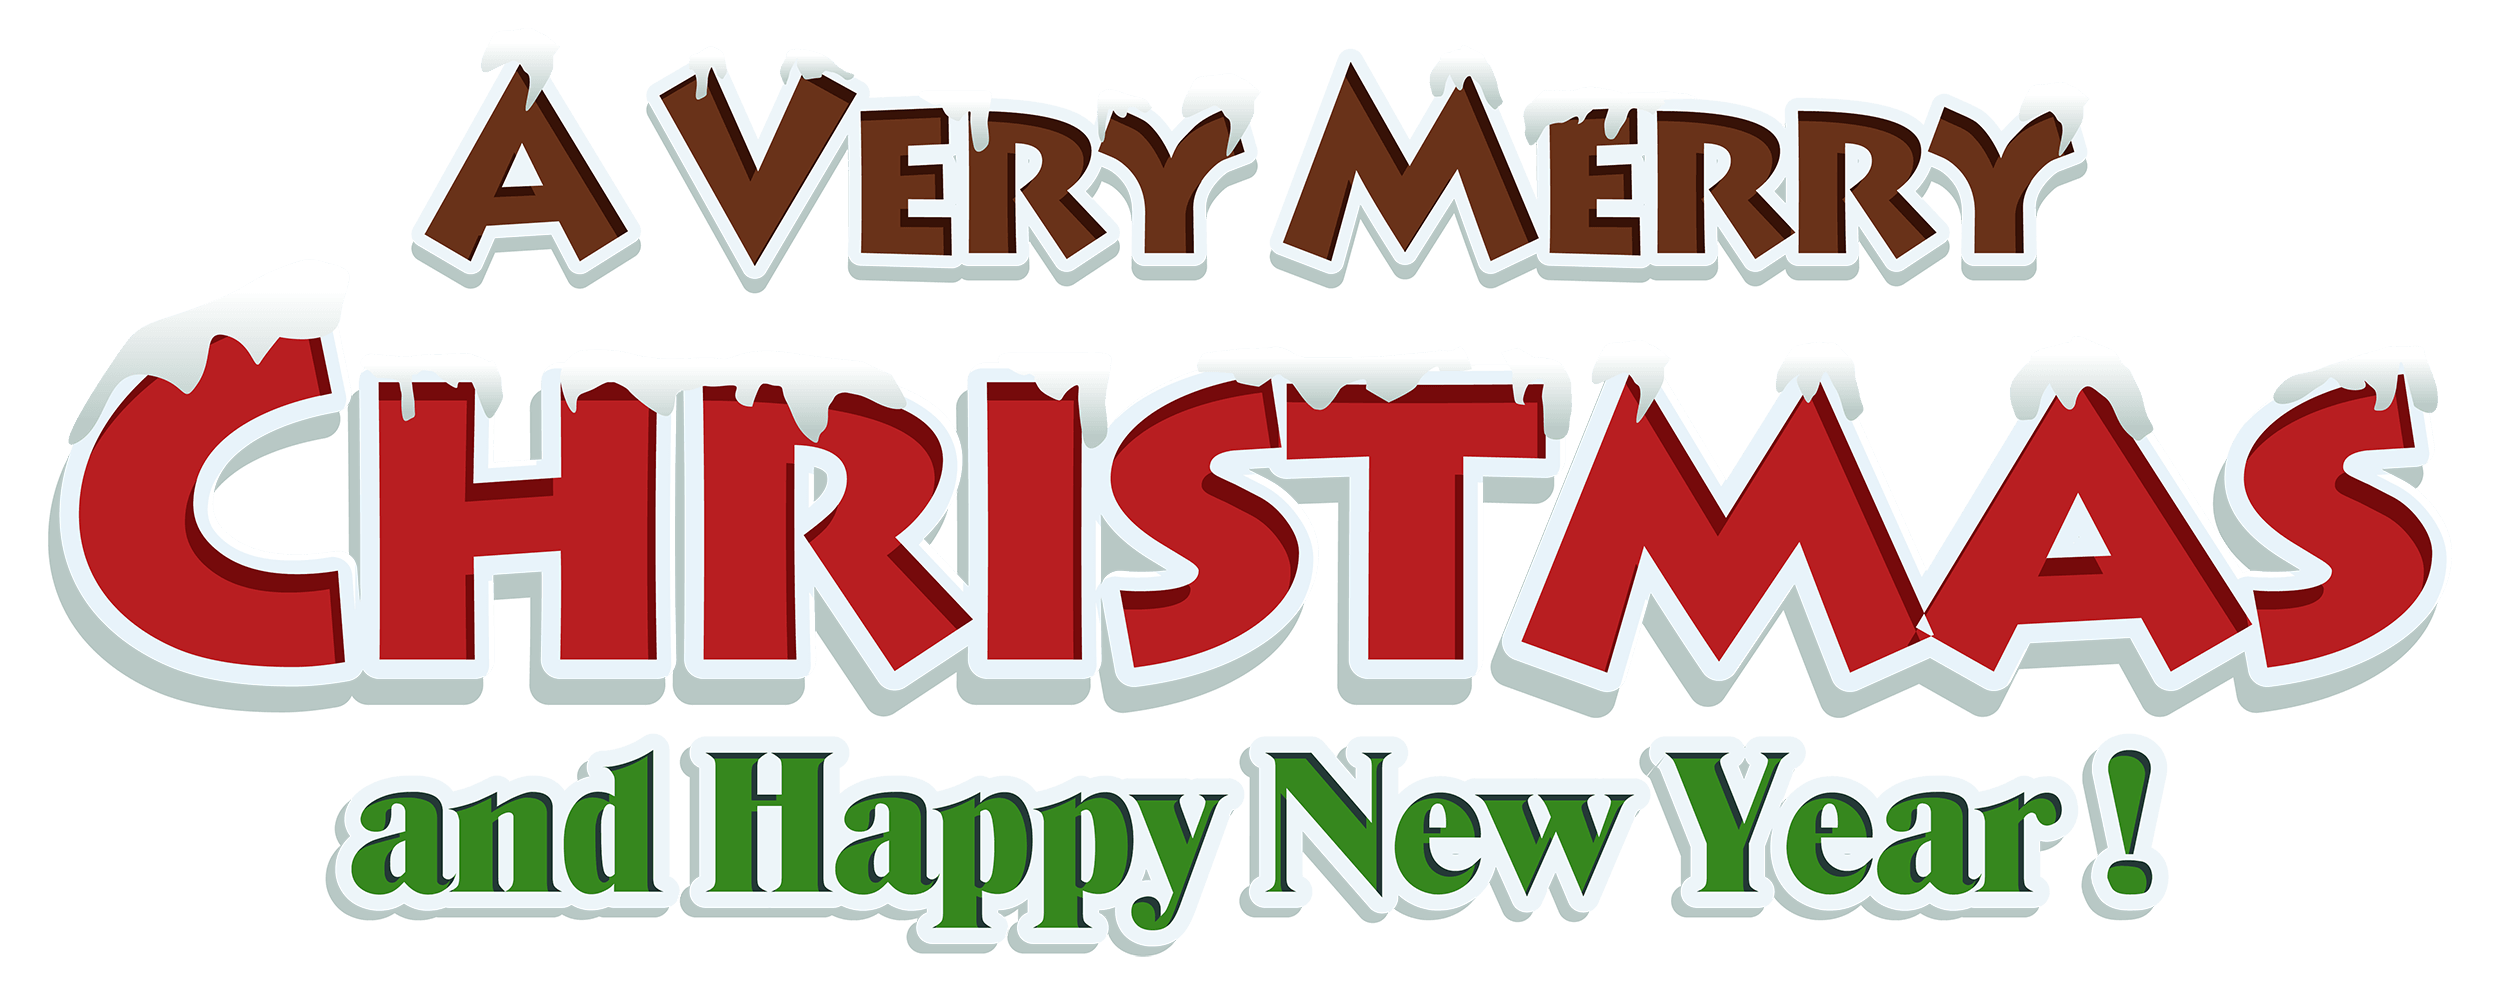 Christmas And Happy New Year Clipart - Merry Christmas ...